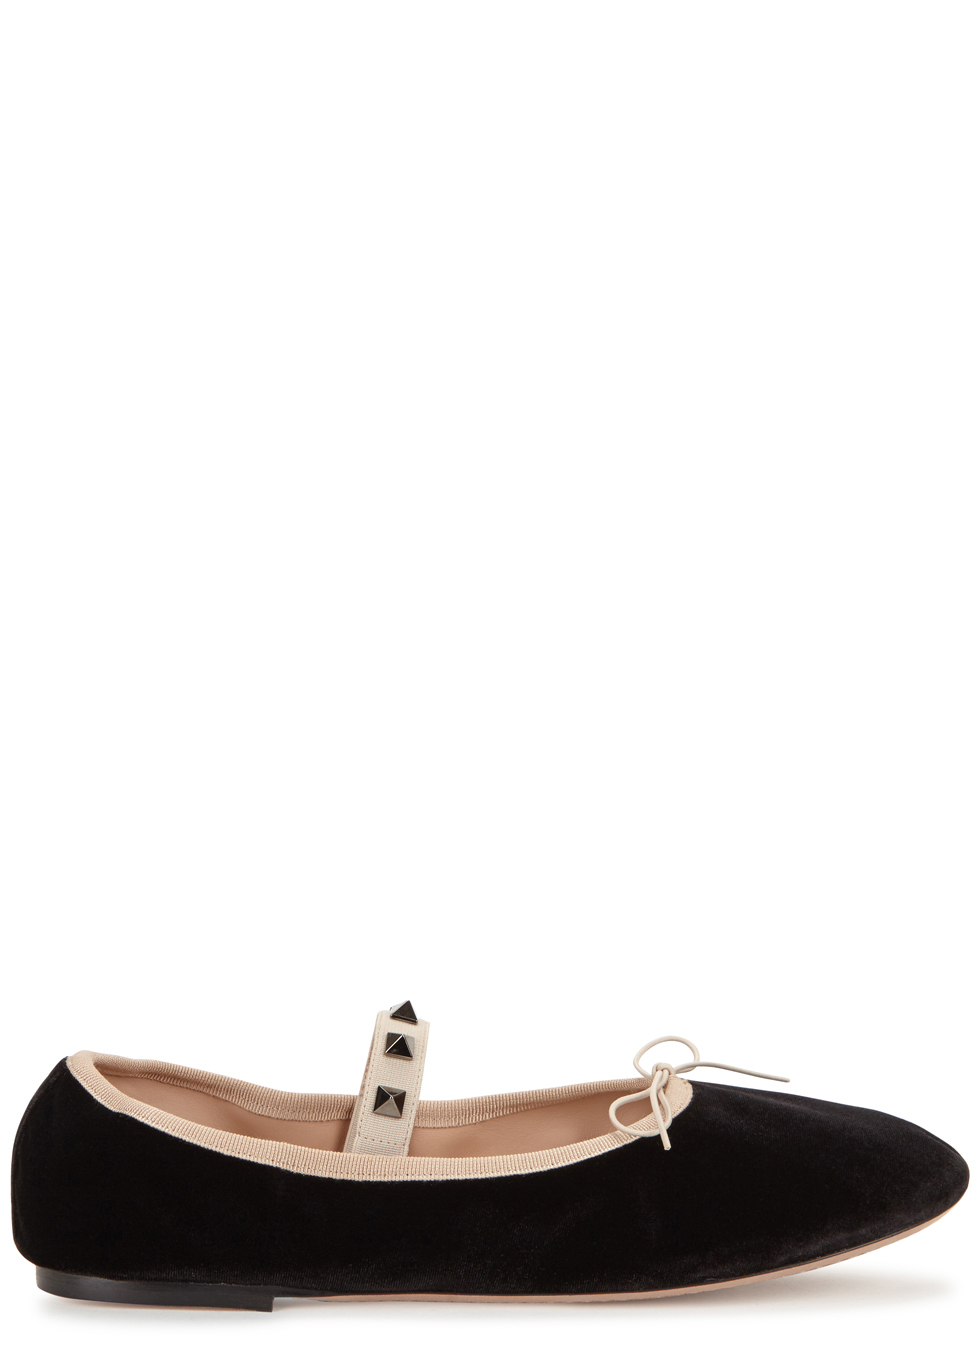 Rockstud Black Velvet Ballet Flats - predominant colour: black; occasions: casual; material: velvet; heel height: flat; embellishment: studs; ankle detail: ankle strap; toe: round toe; style: ballerinas / pumps; finish: plain; pattern: plain; wardrobe: basic; season: a/w 2016